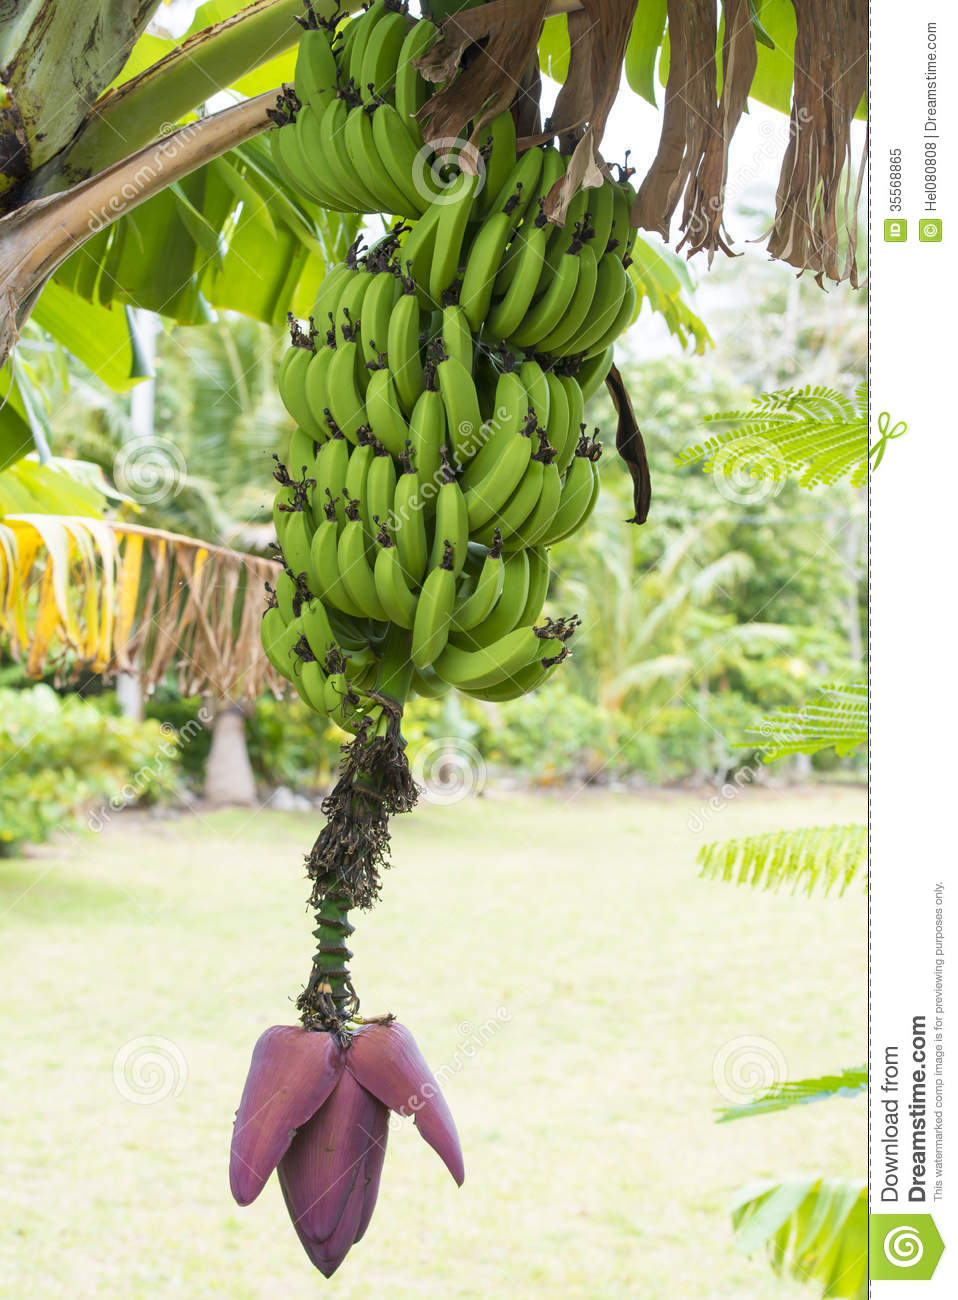 Banana Plant With Bloom And Fruits Royalty Free Stock